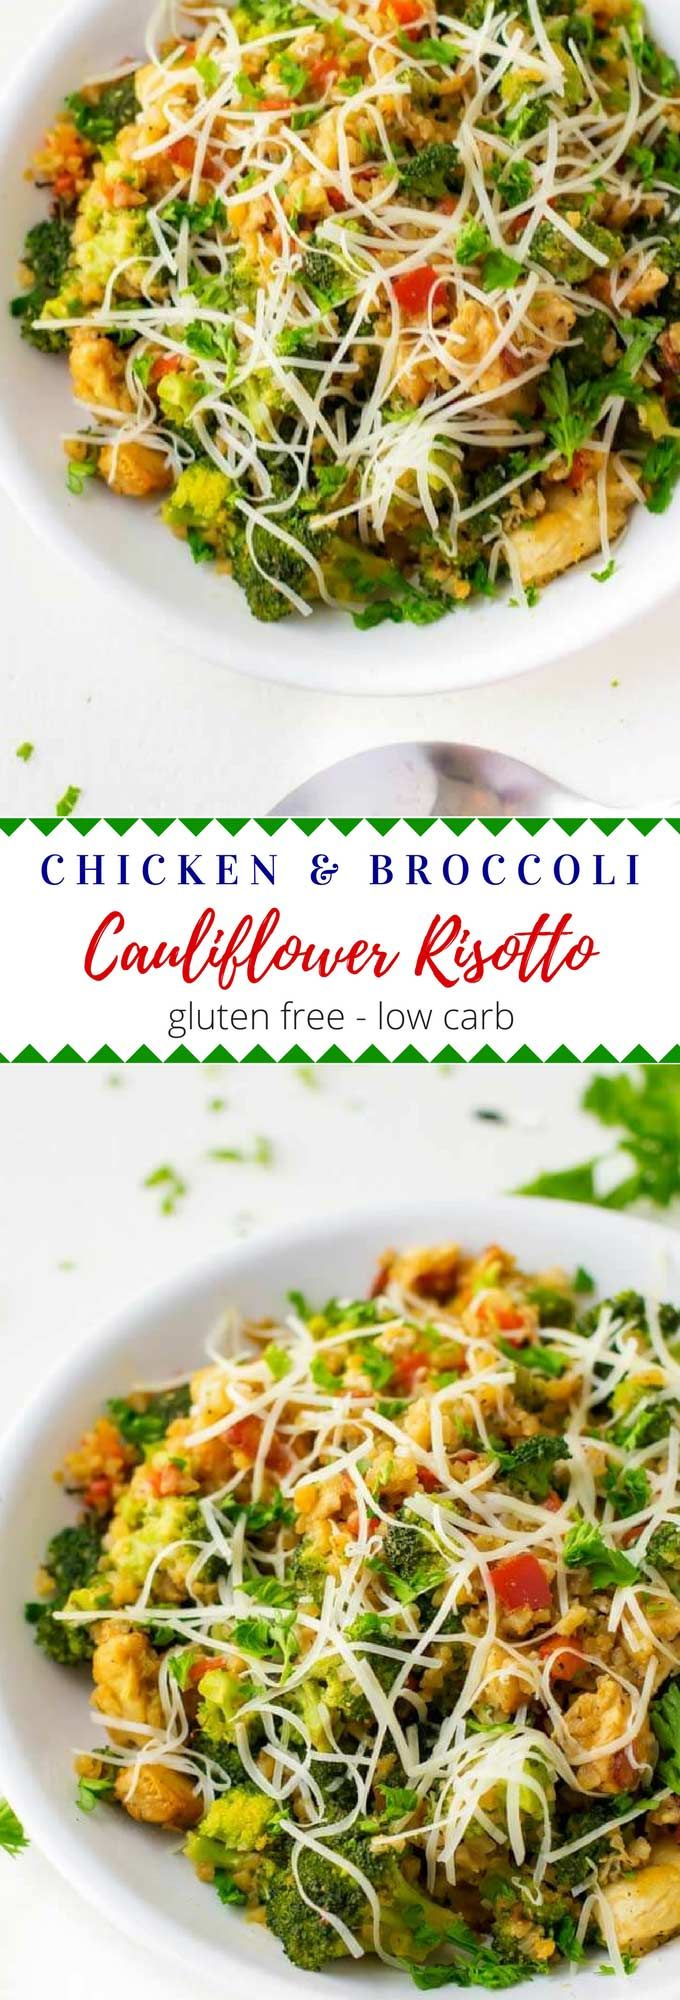 This one-pan recipe for Chicken Broccoli Cauliflower Risotto is low-carb and comes together in about 20 minutes.  It is an easy weeknight recipe that is perfect for a clean eating diet.  Gluten-Free and Keto Friendly. #ad  #AlexiaVeggieSides @alexiafoods